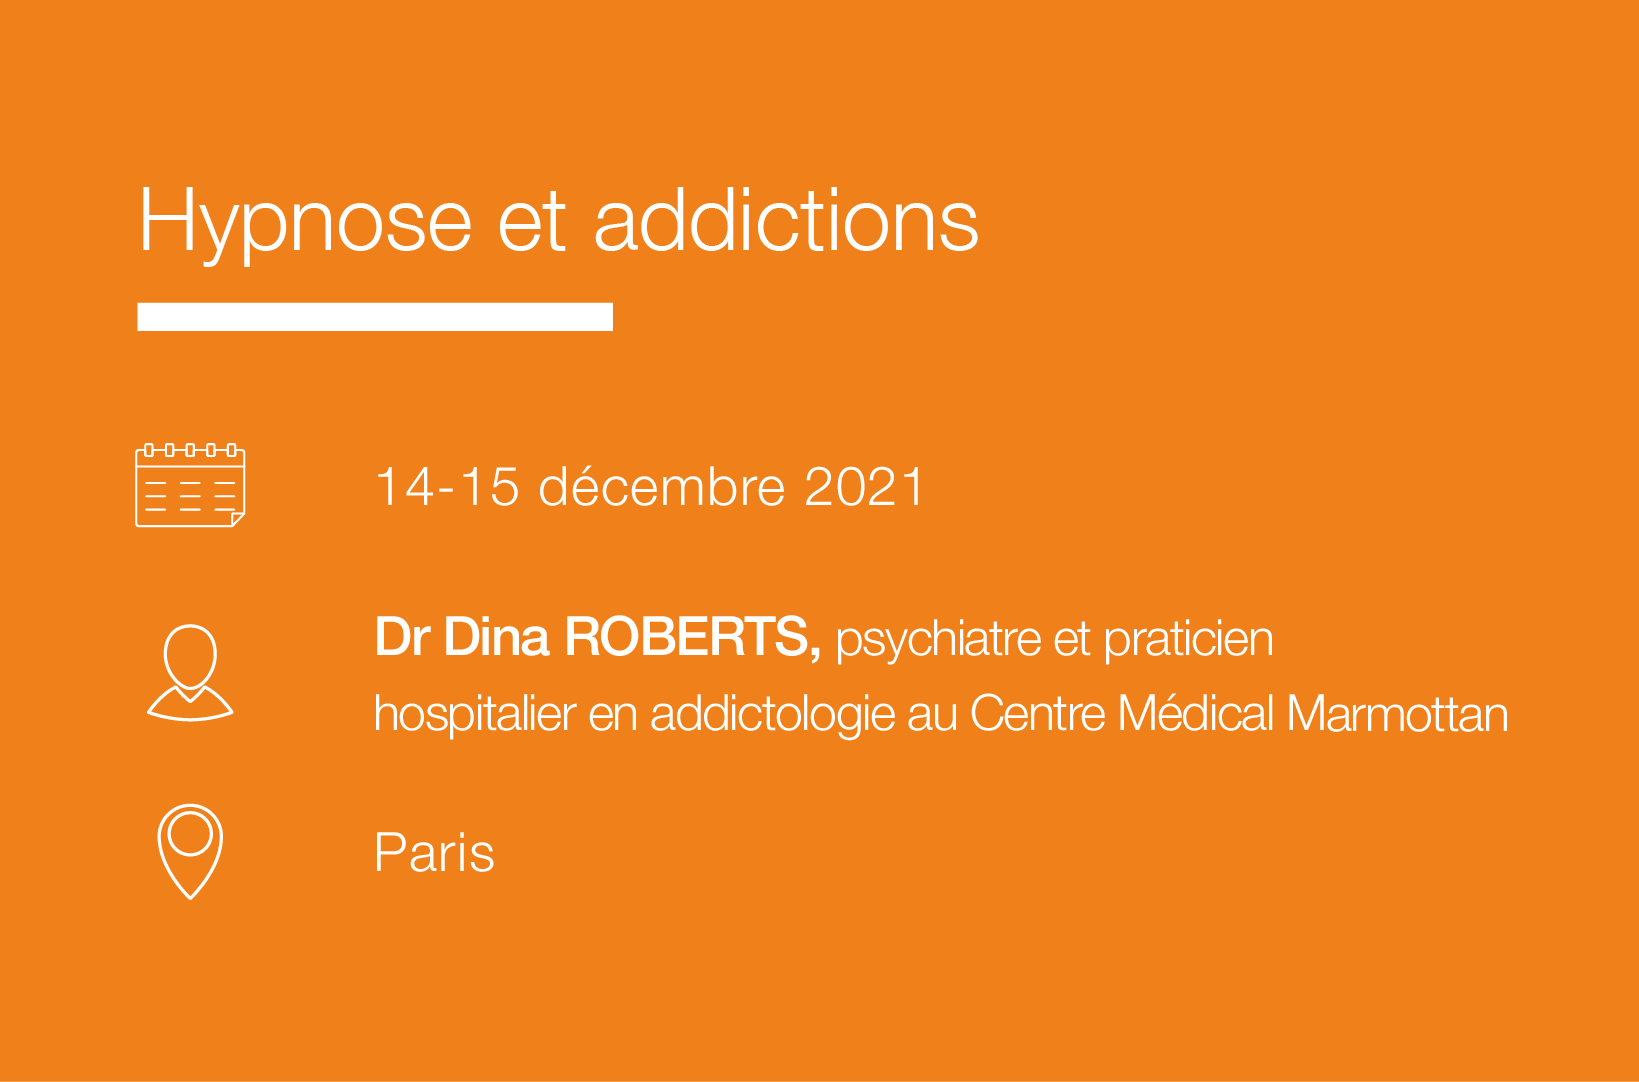 Seminaire Hypnose et addictions IFH